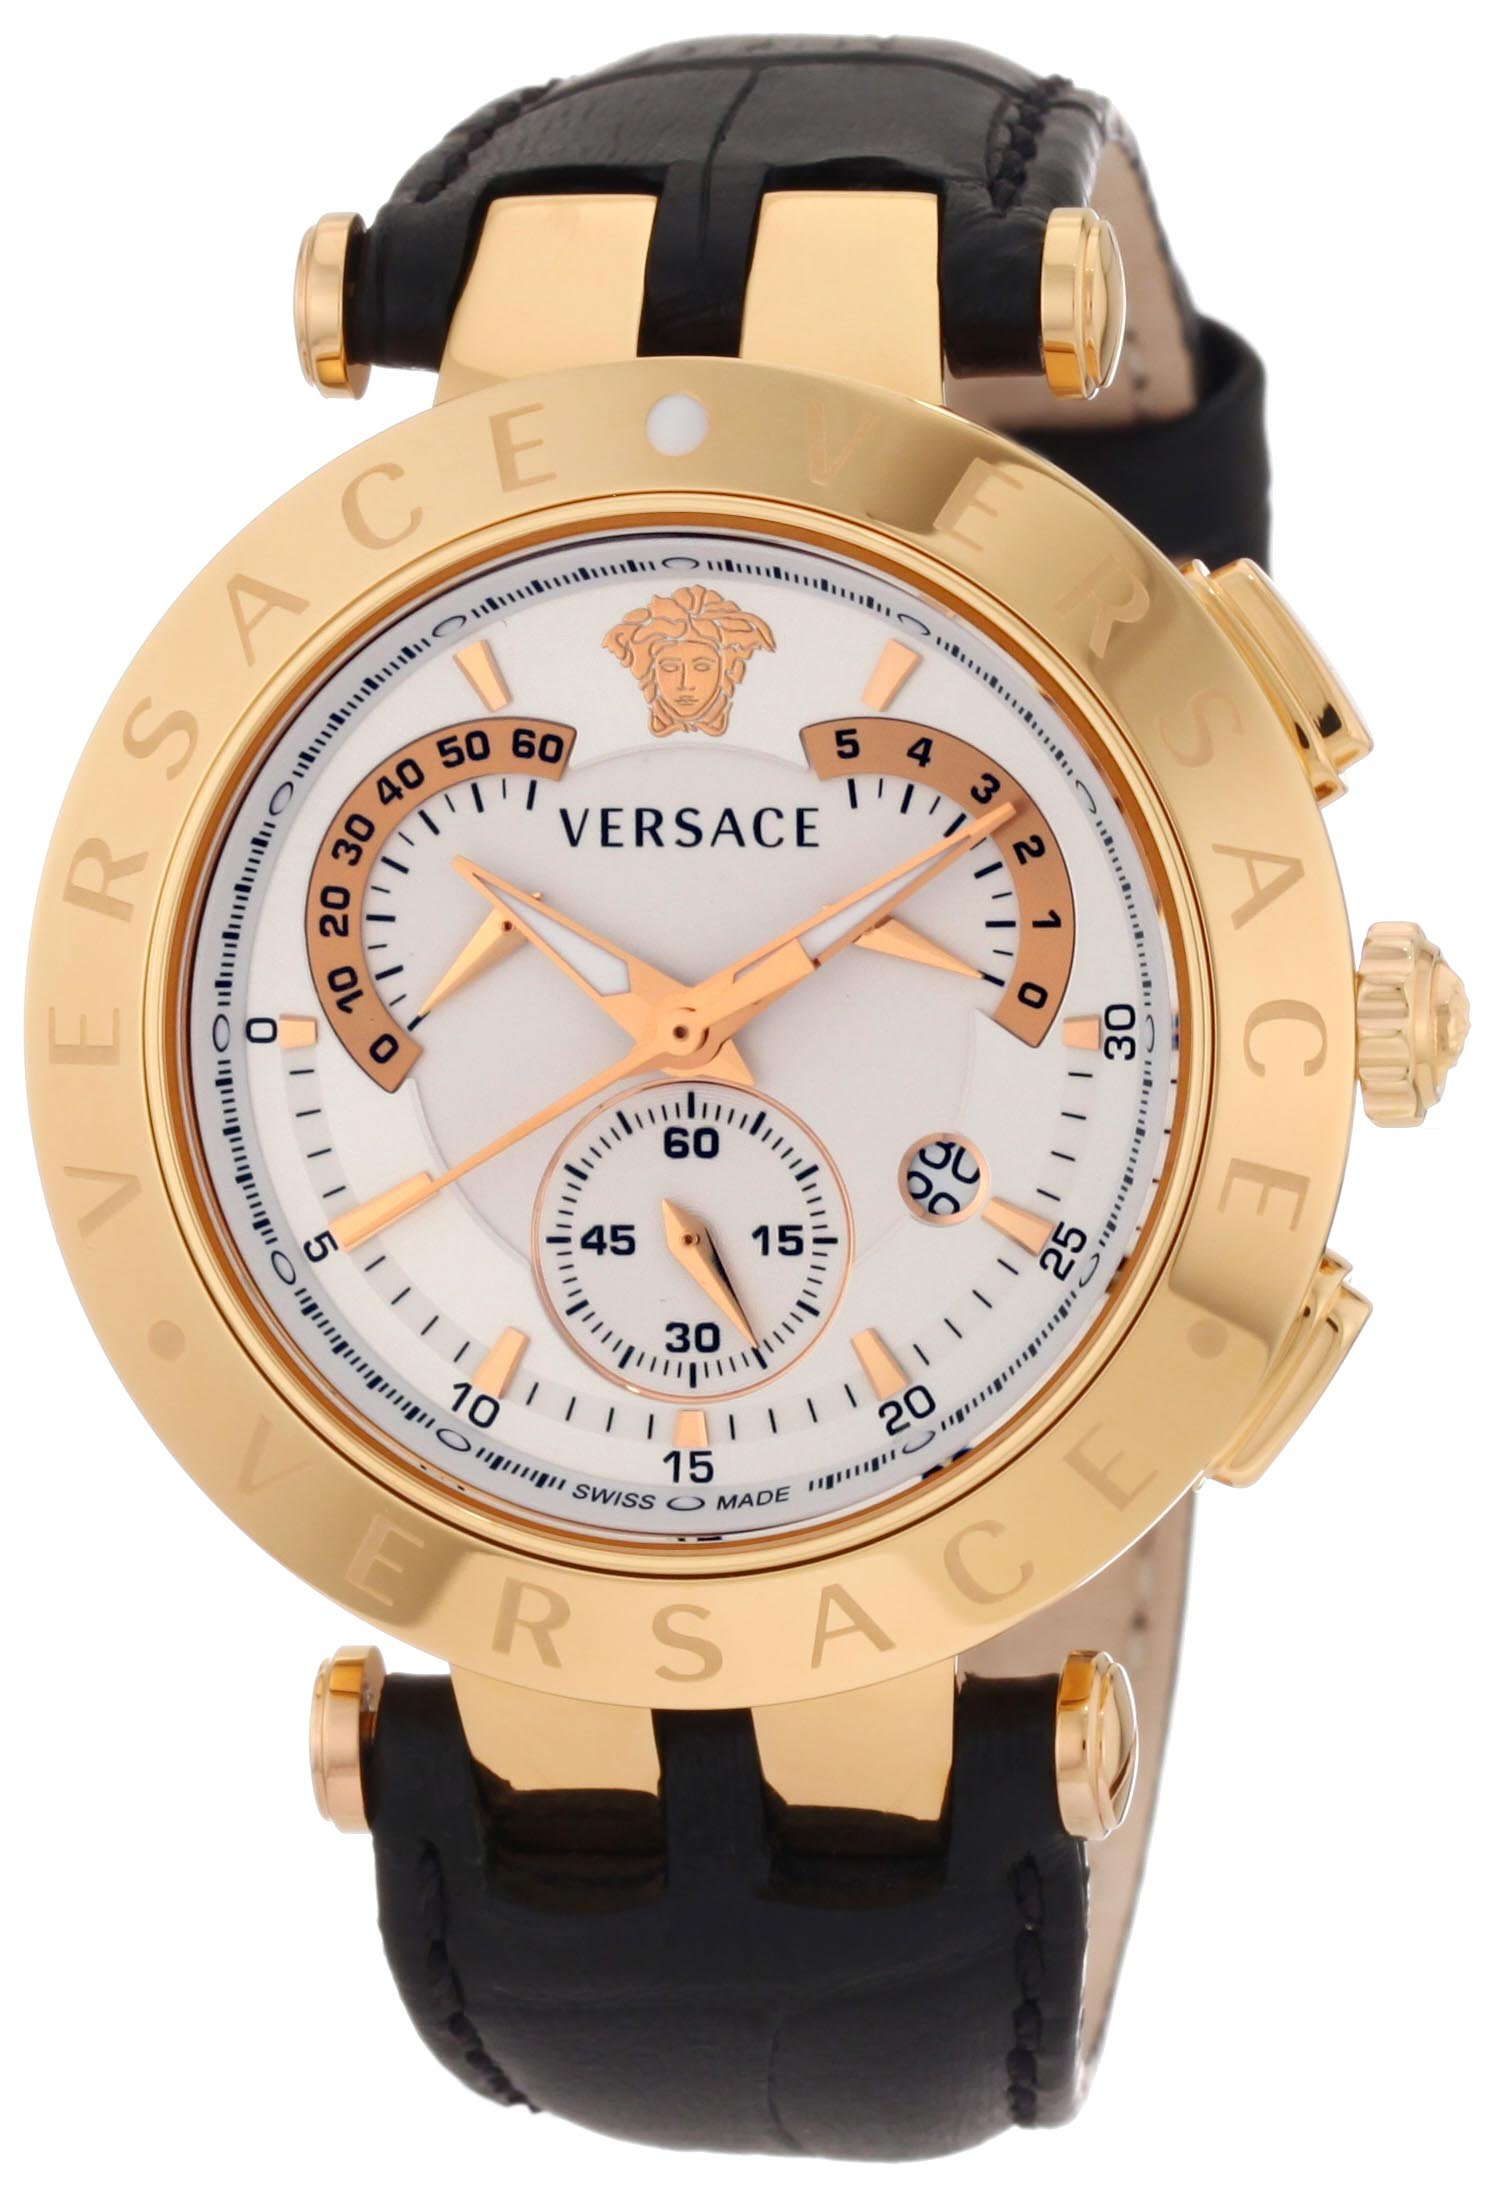 Versace Men's 23C80D002 S009 ''V-Race'' Rose Gold-Plated Watch with Black Leather Band